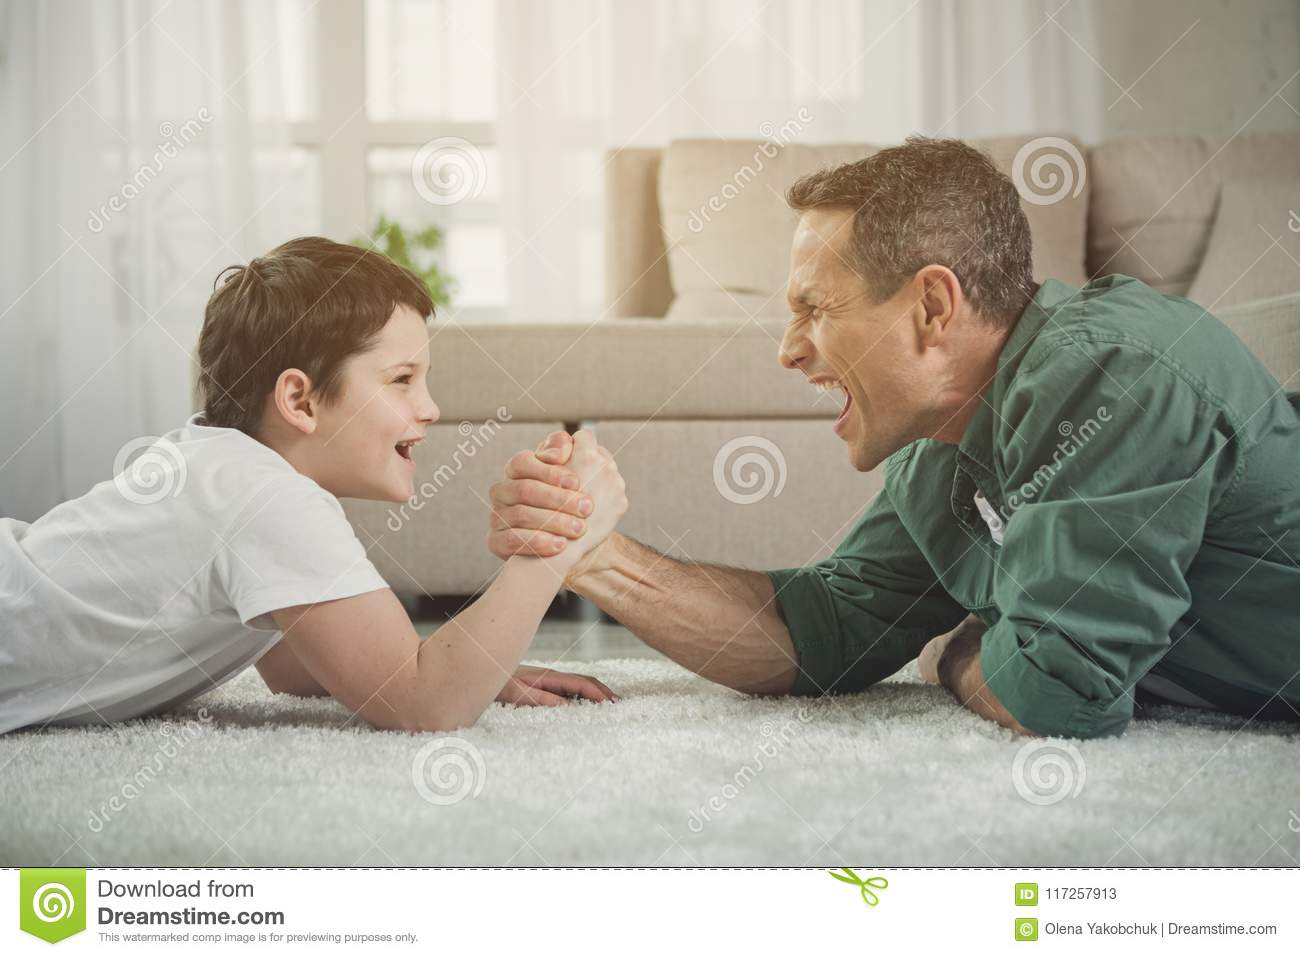 Cheerful father and son playing arm-wrestling at home